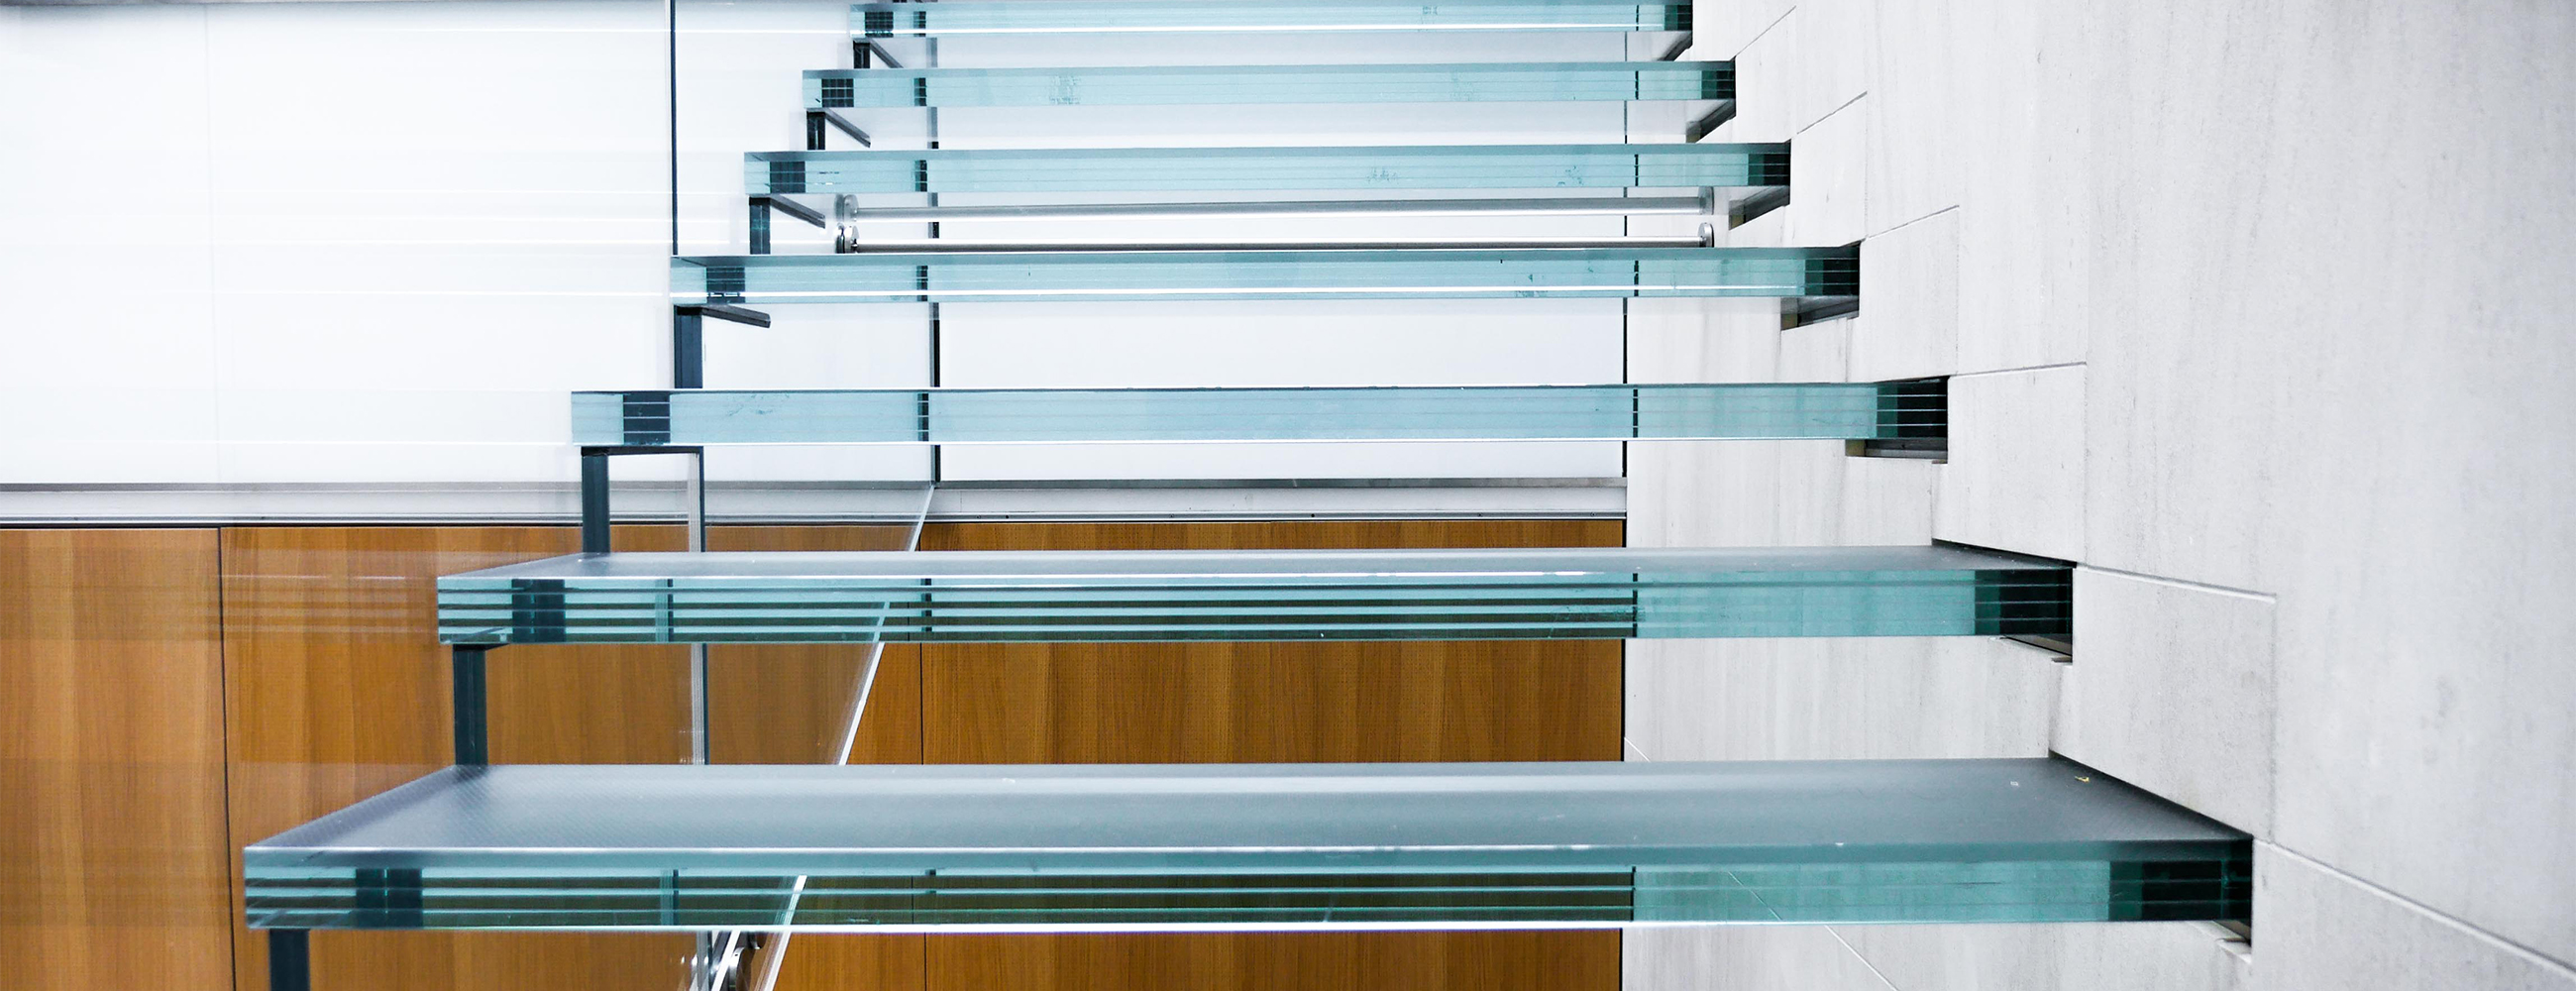 Three Reasons this All-Glass Staircase is World-Class